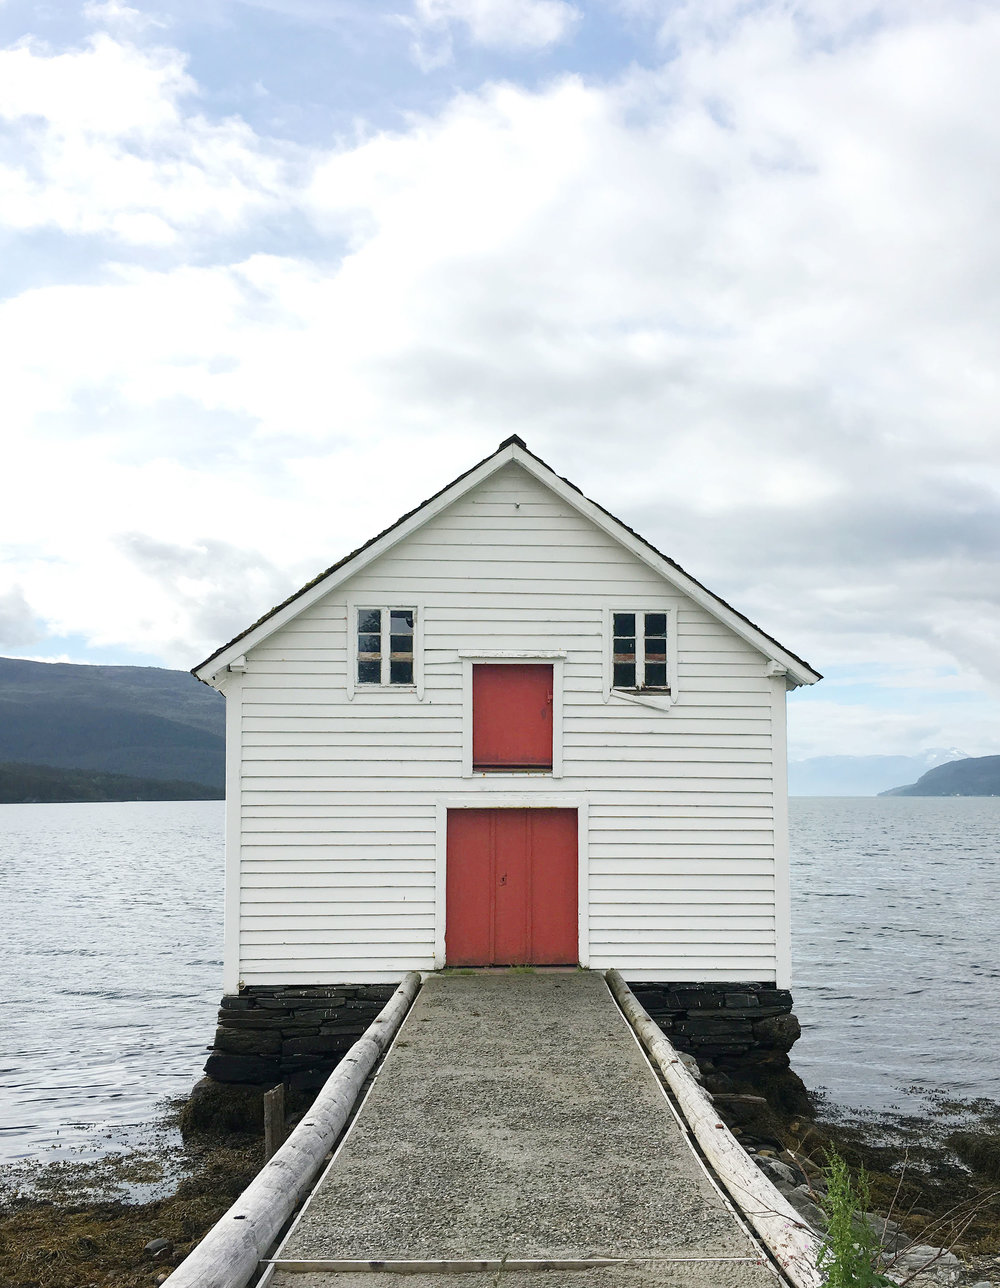 This tiny cottage by a lake is so picture perfect!